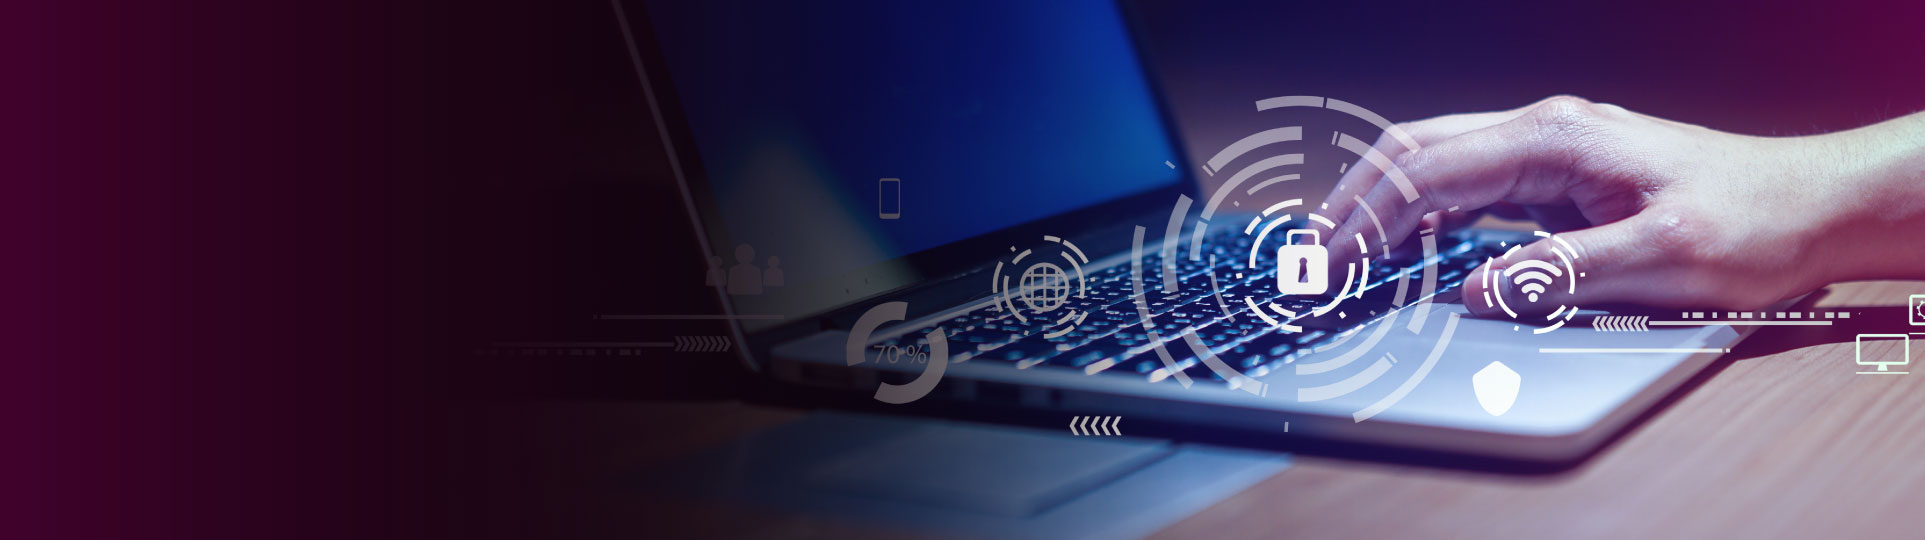 Birlasoft at Ramp up your cybersecurity strategy in the era of remote working